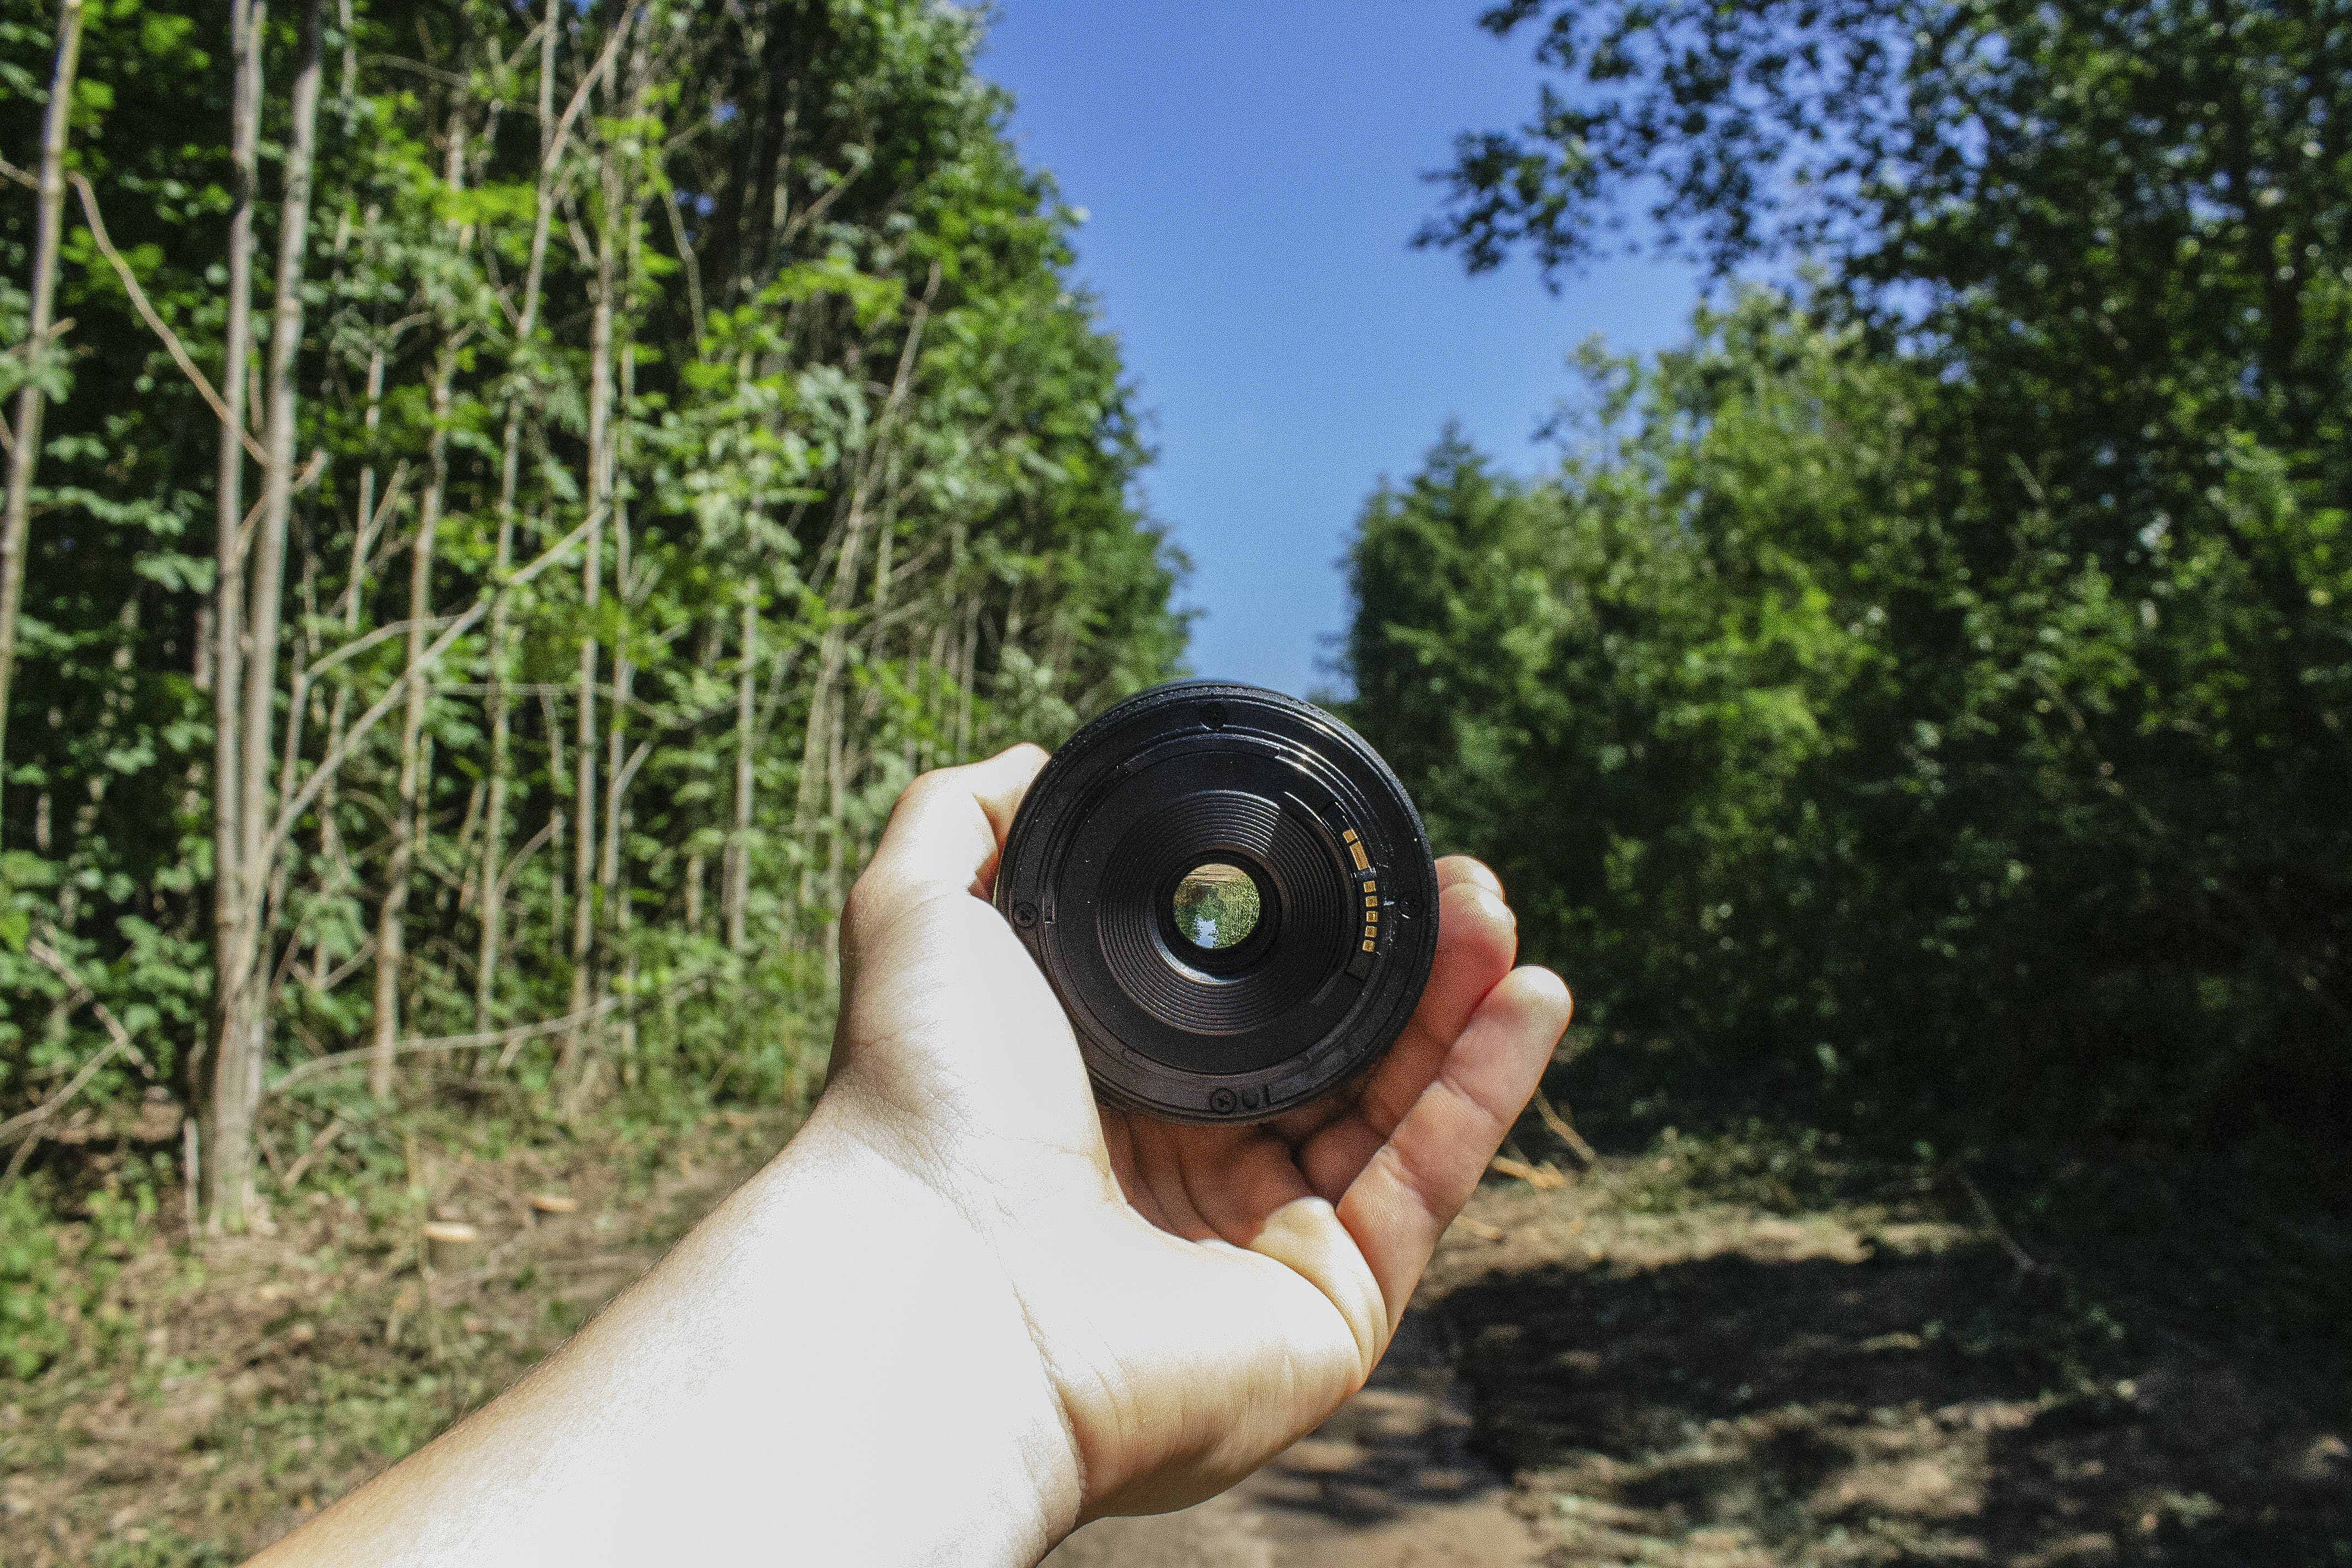 Person Holding Camera Lens in Woods